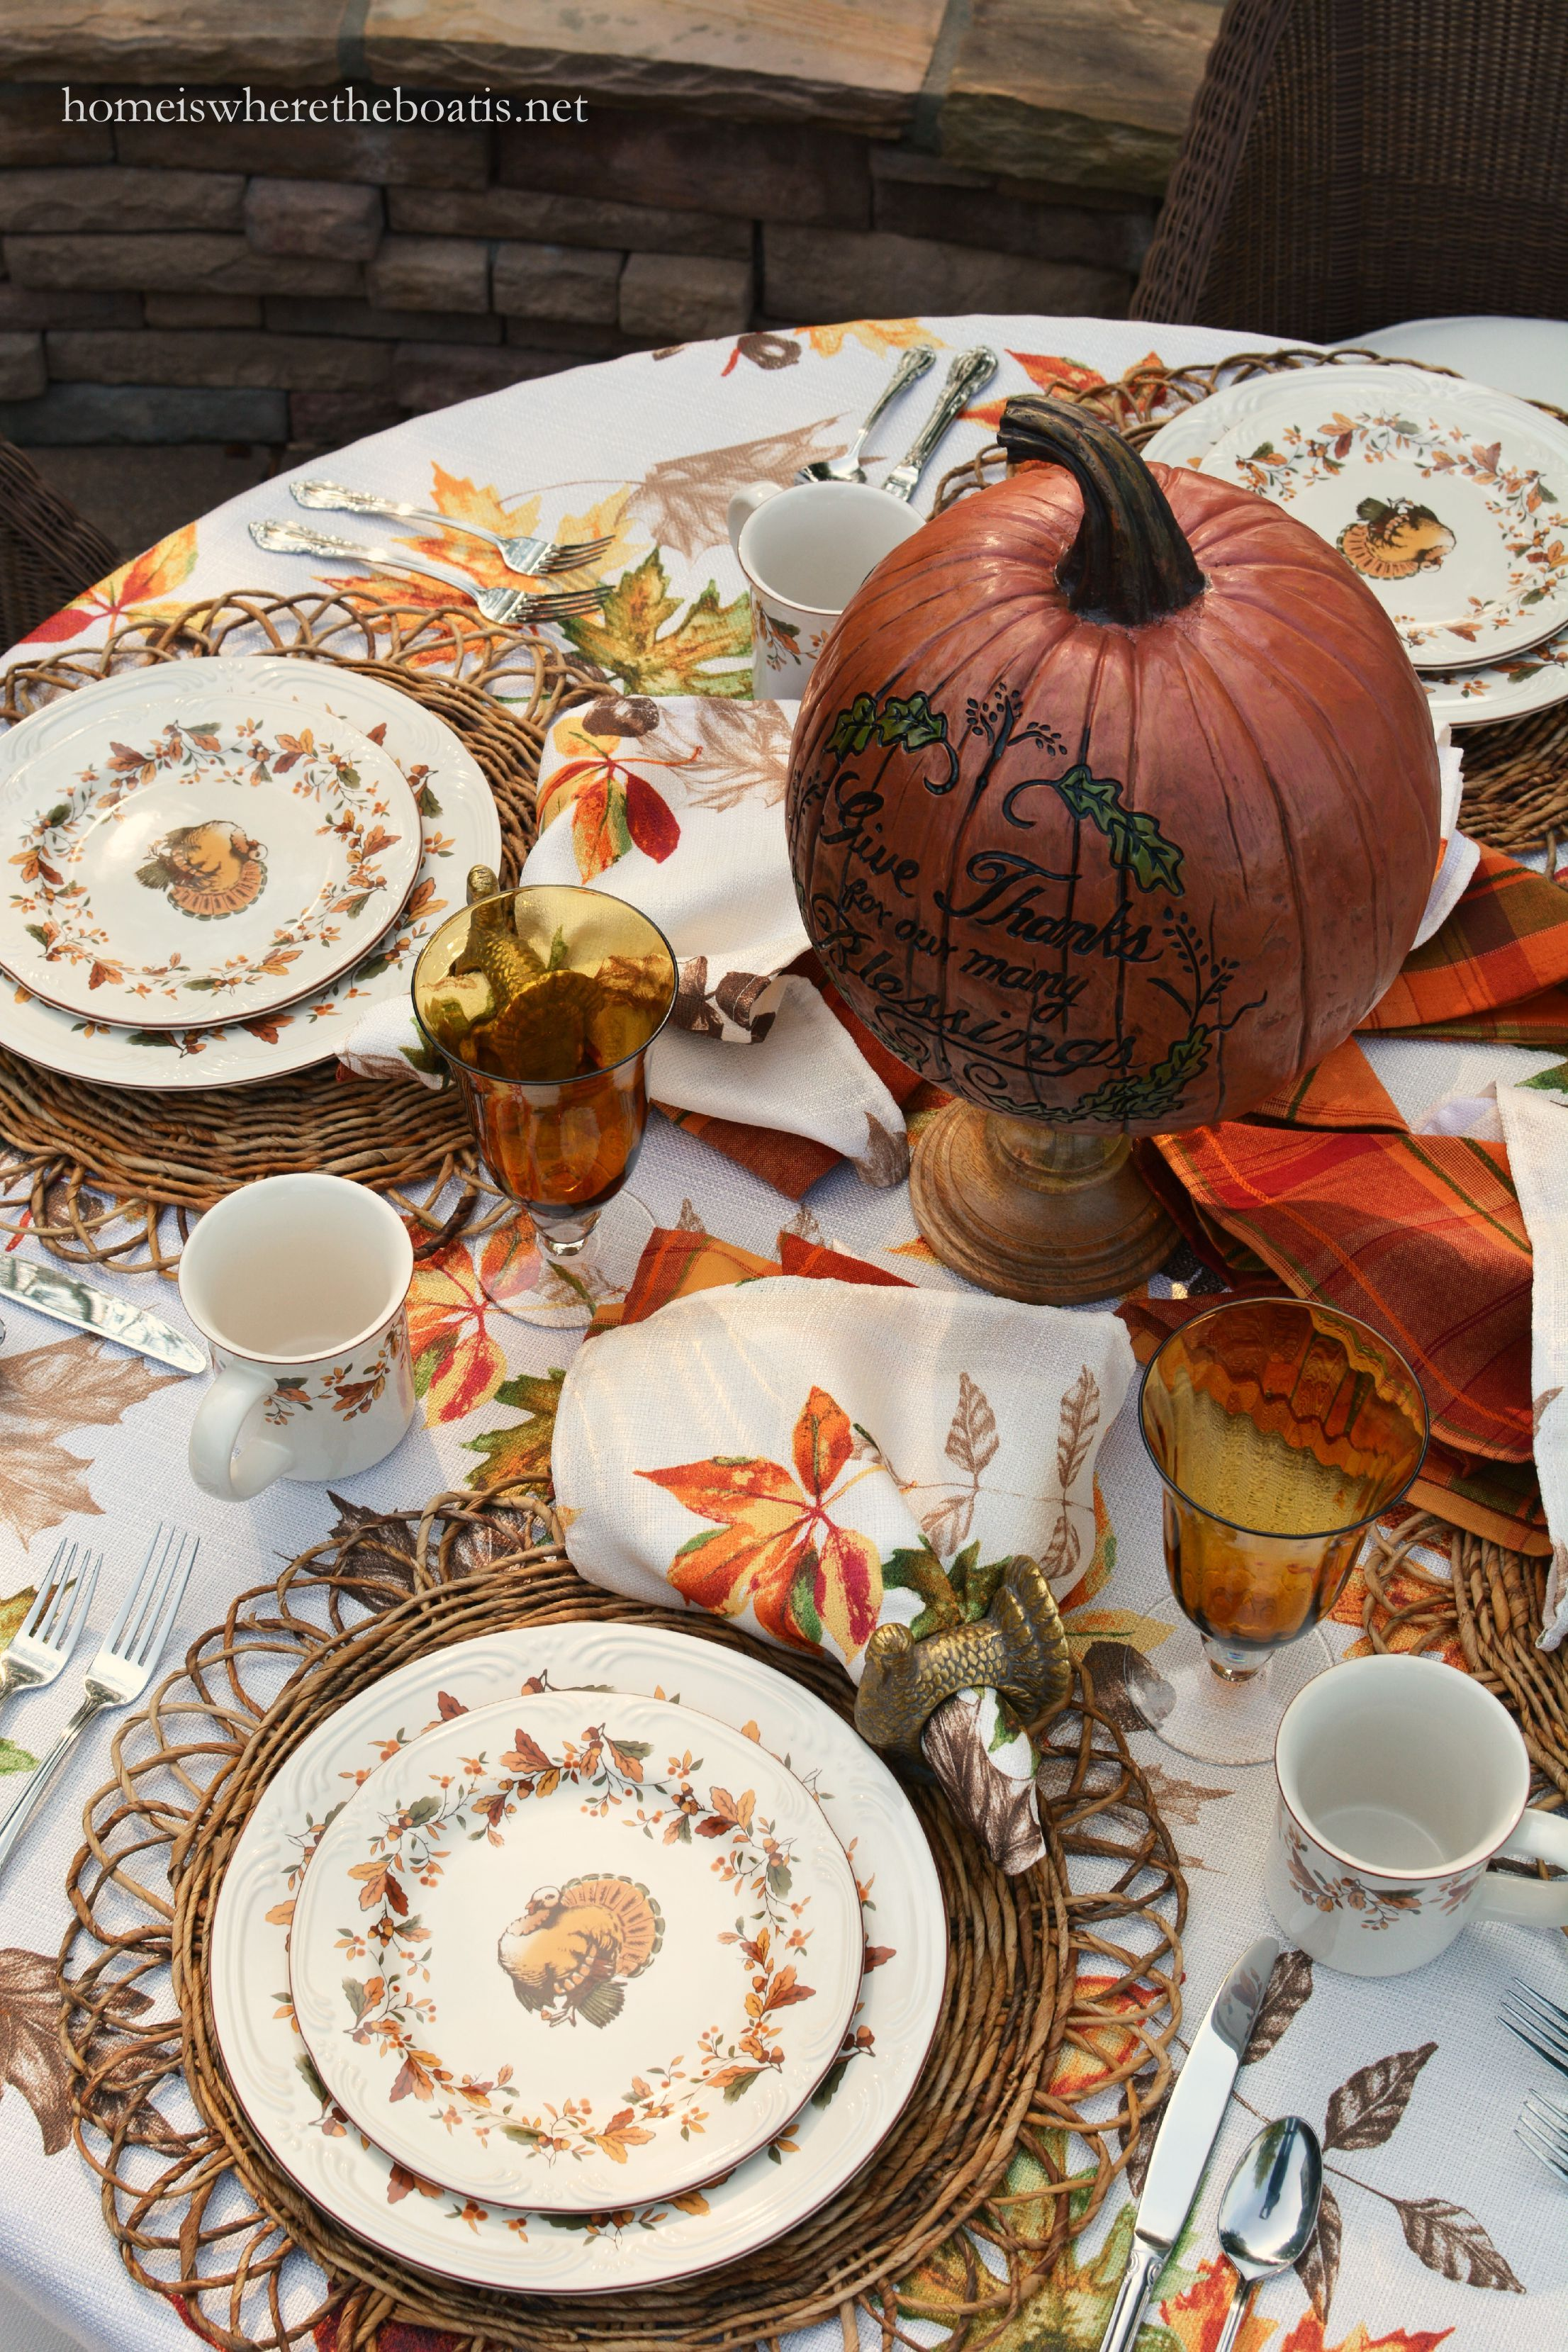 I\u0027m at the table with scattered leaves turkeys and Pfaltzgraff Autumn Berry Dinnerware. & Scattered Leaves Turkeys and Pfaltzgraff Autumn Berry Dinnerware ...